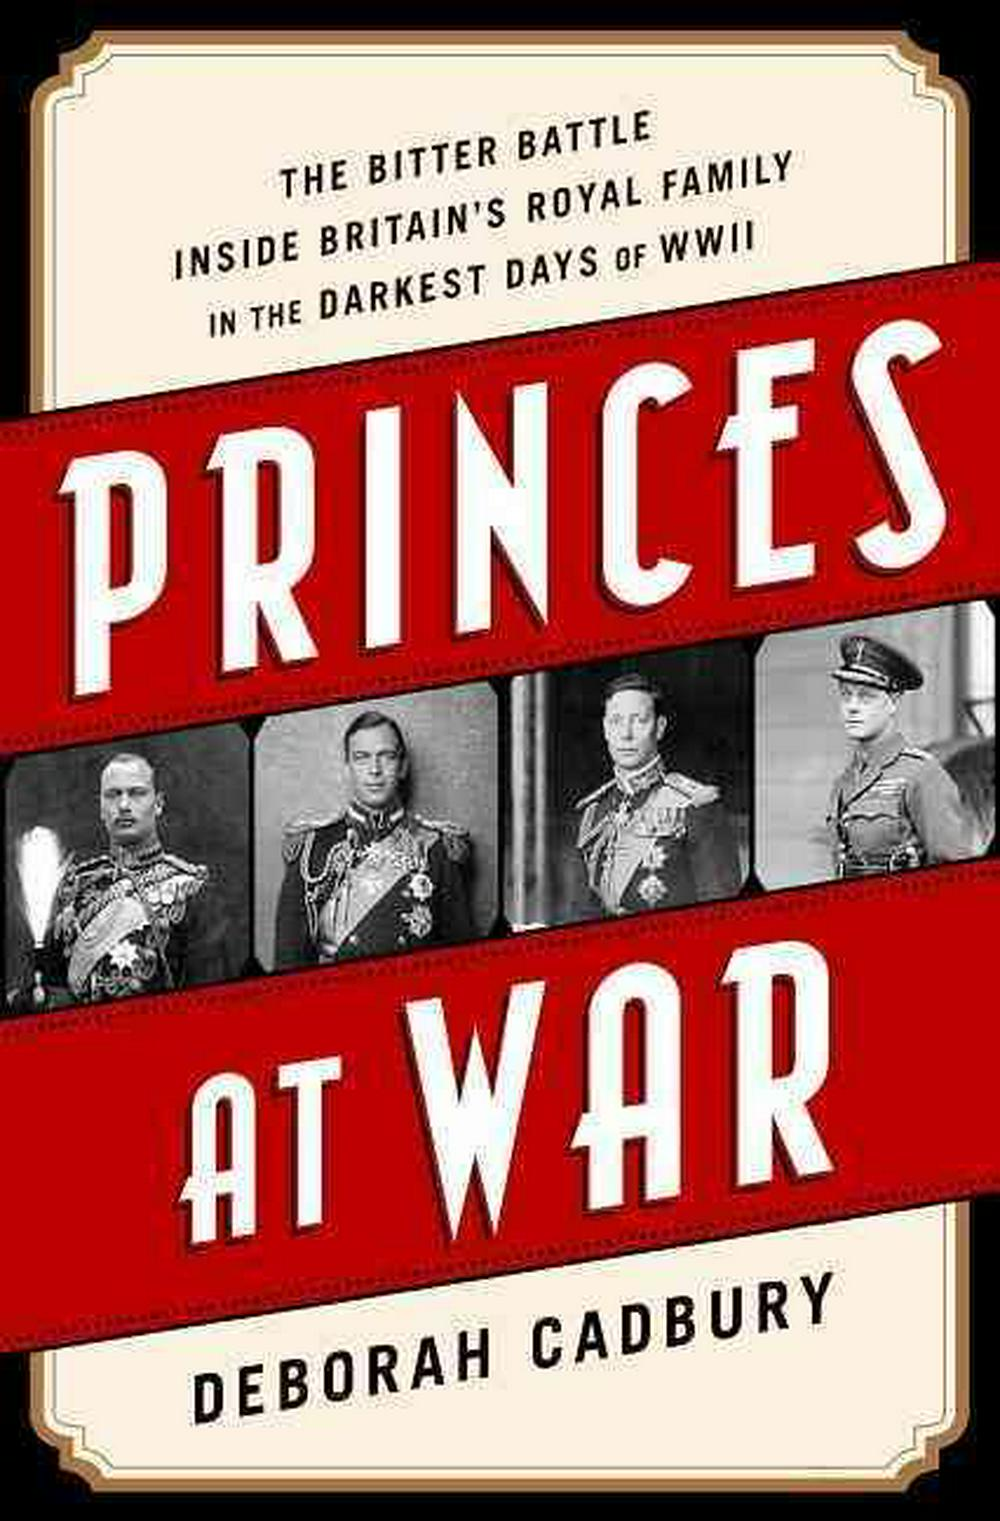 Princes At War (The Bitter Battle Inside Britains Royal Family in the Darkest Days of WWII)